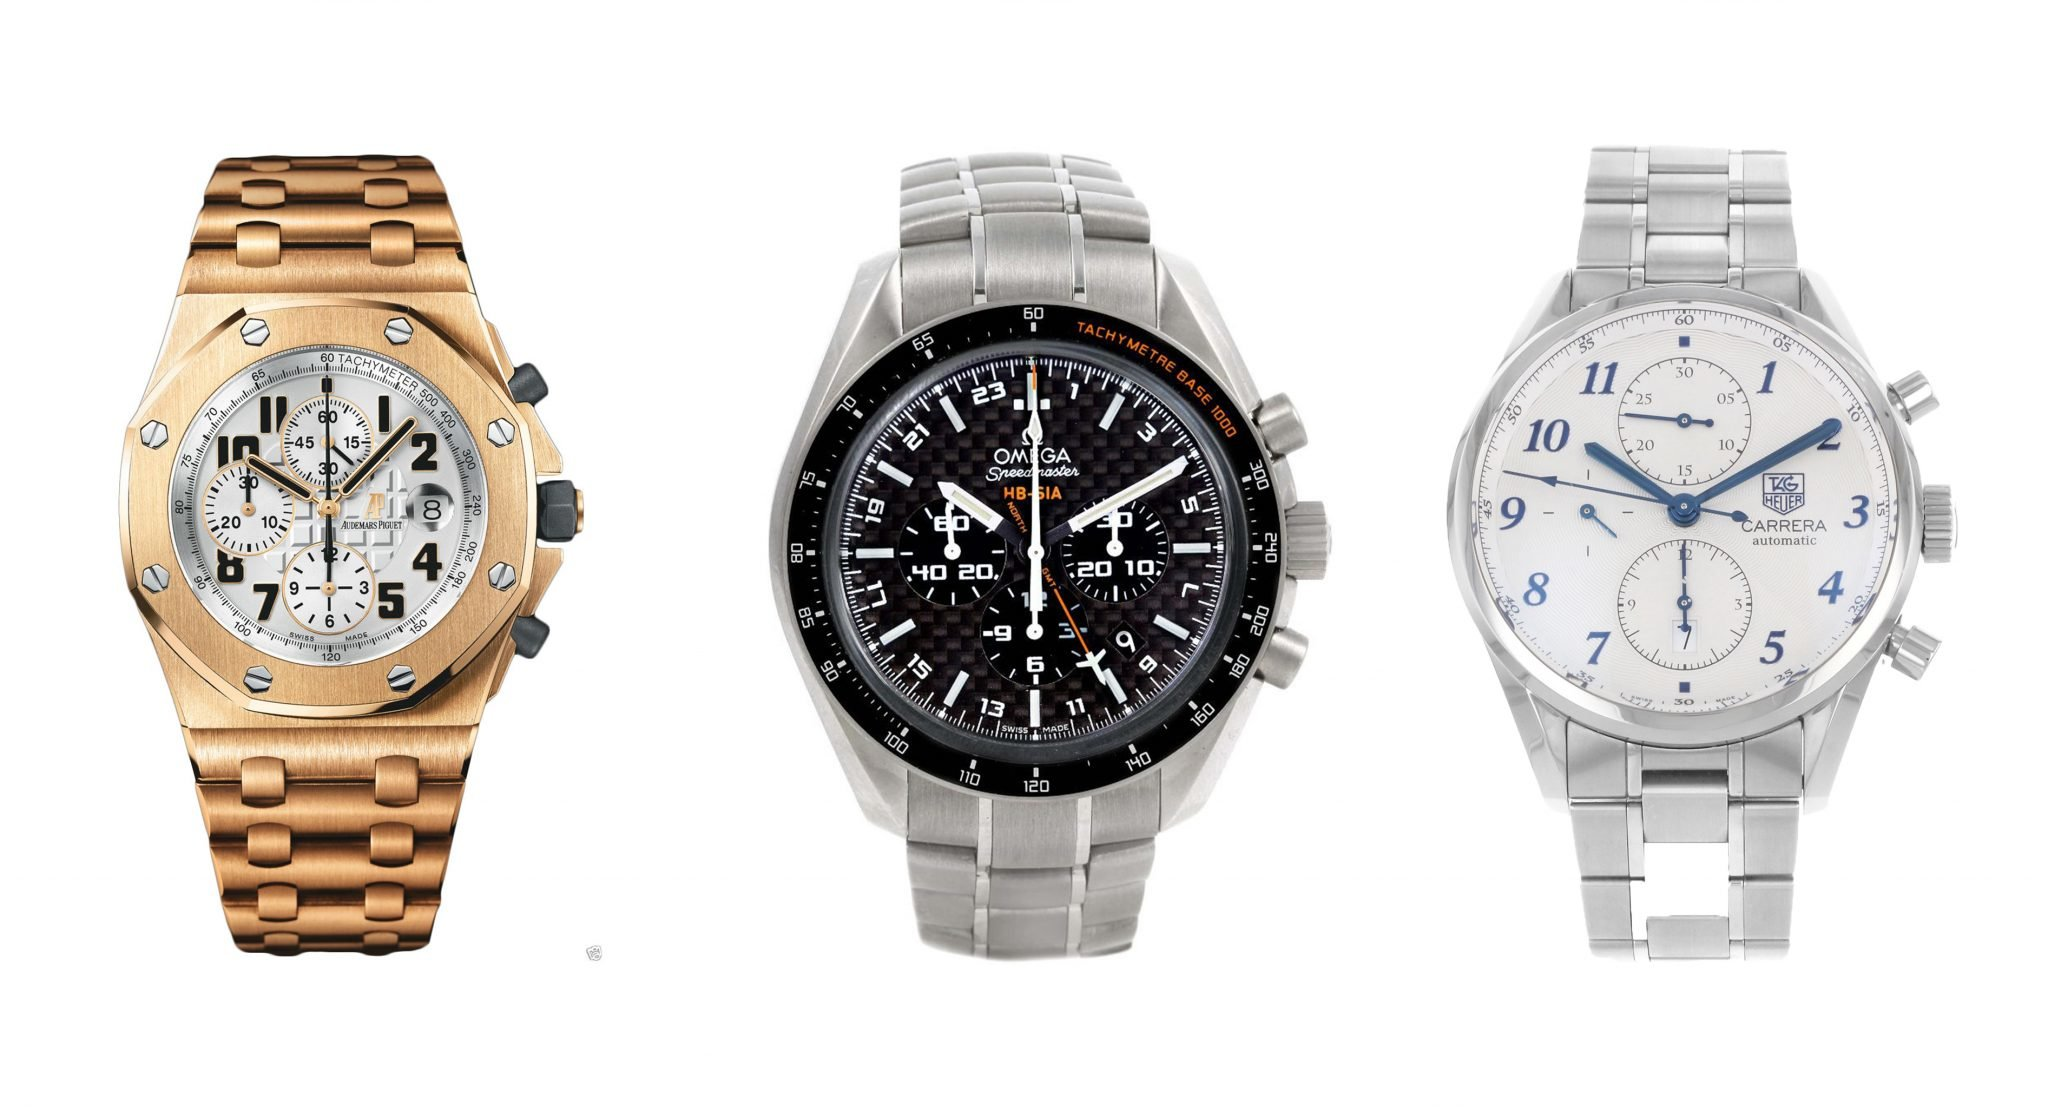 From left to right: Audemars Piguet Royal Oak, Omega Speedmaster, and TAG Heuer Carrera